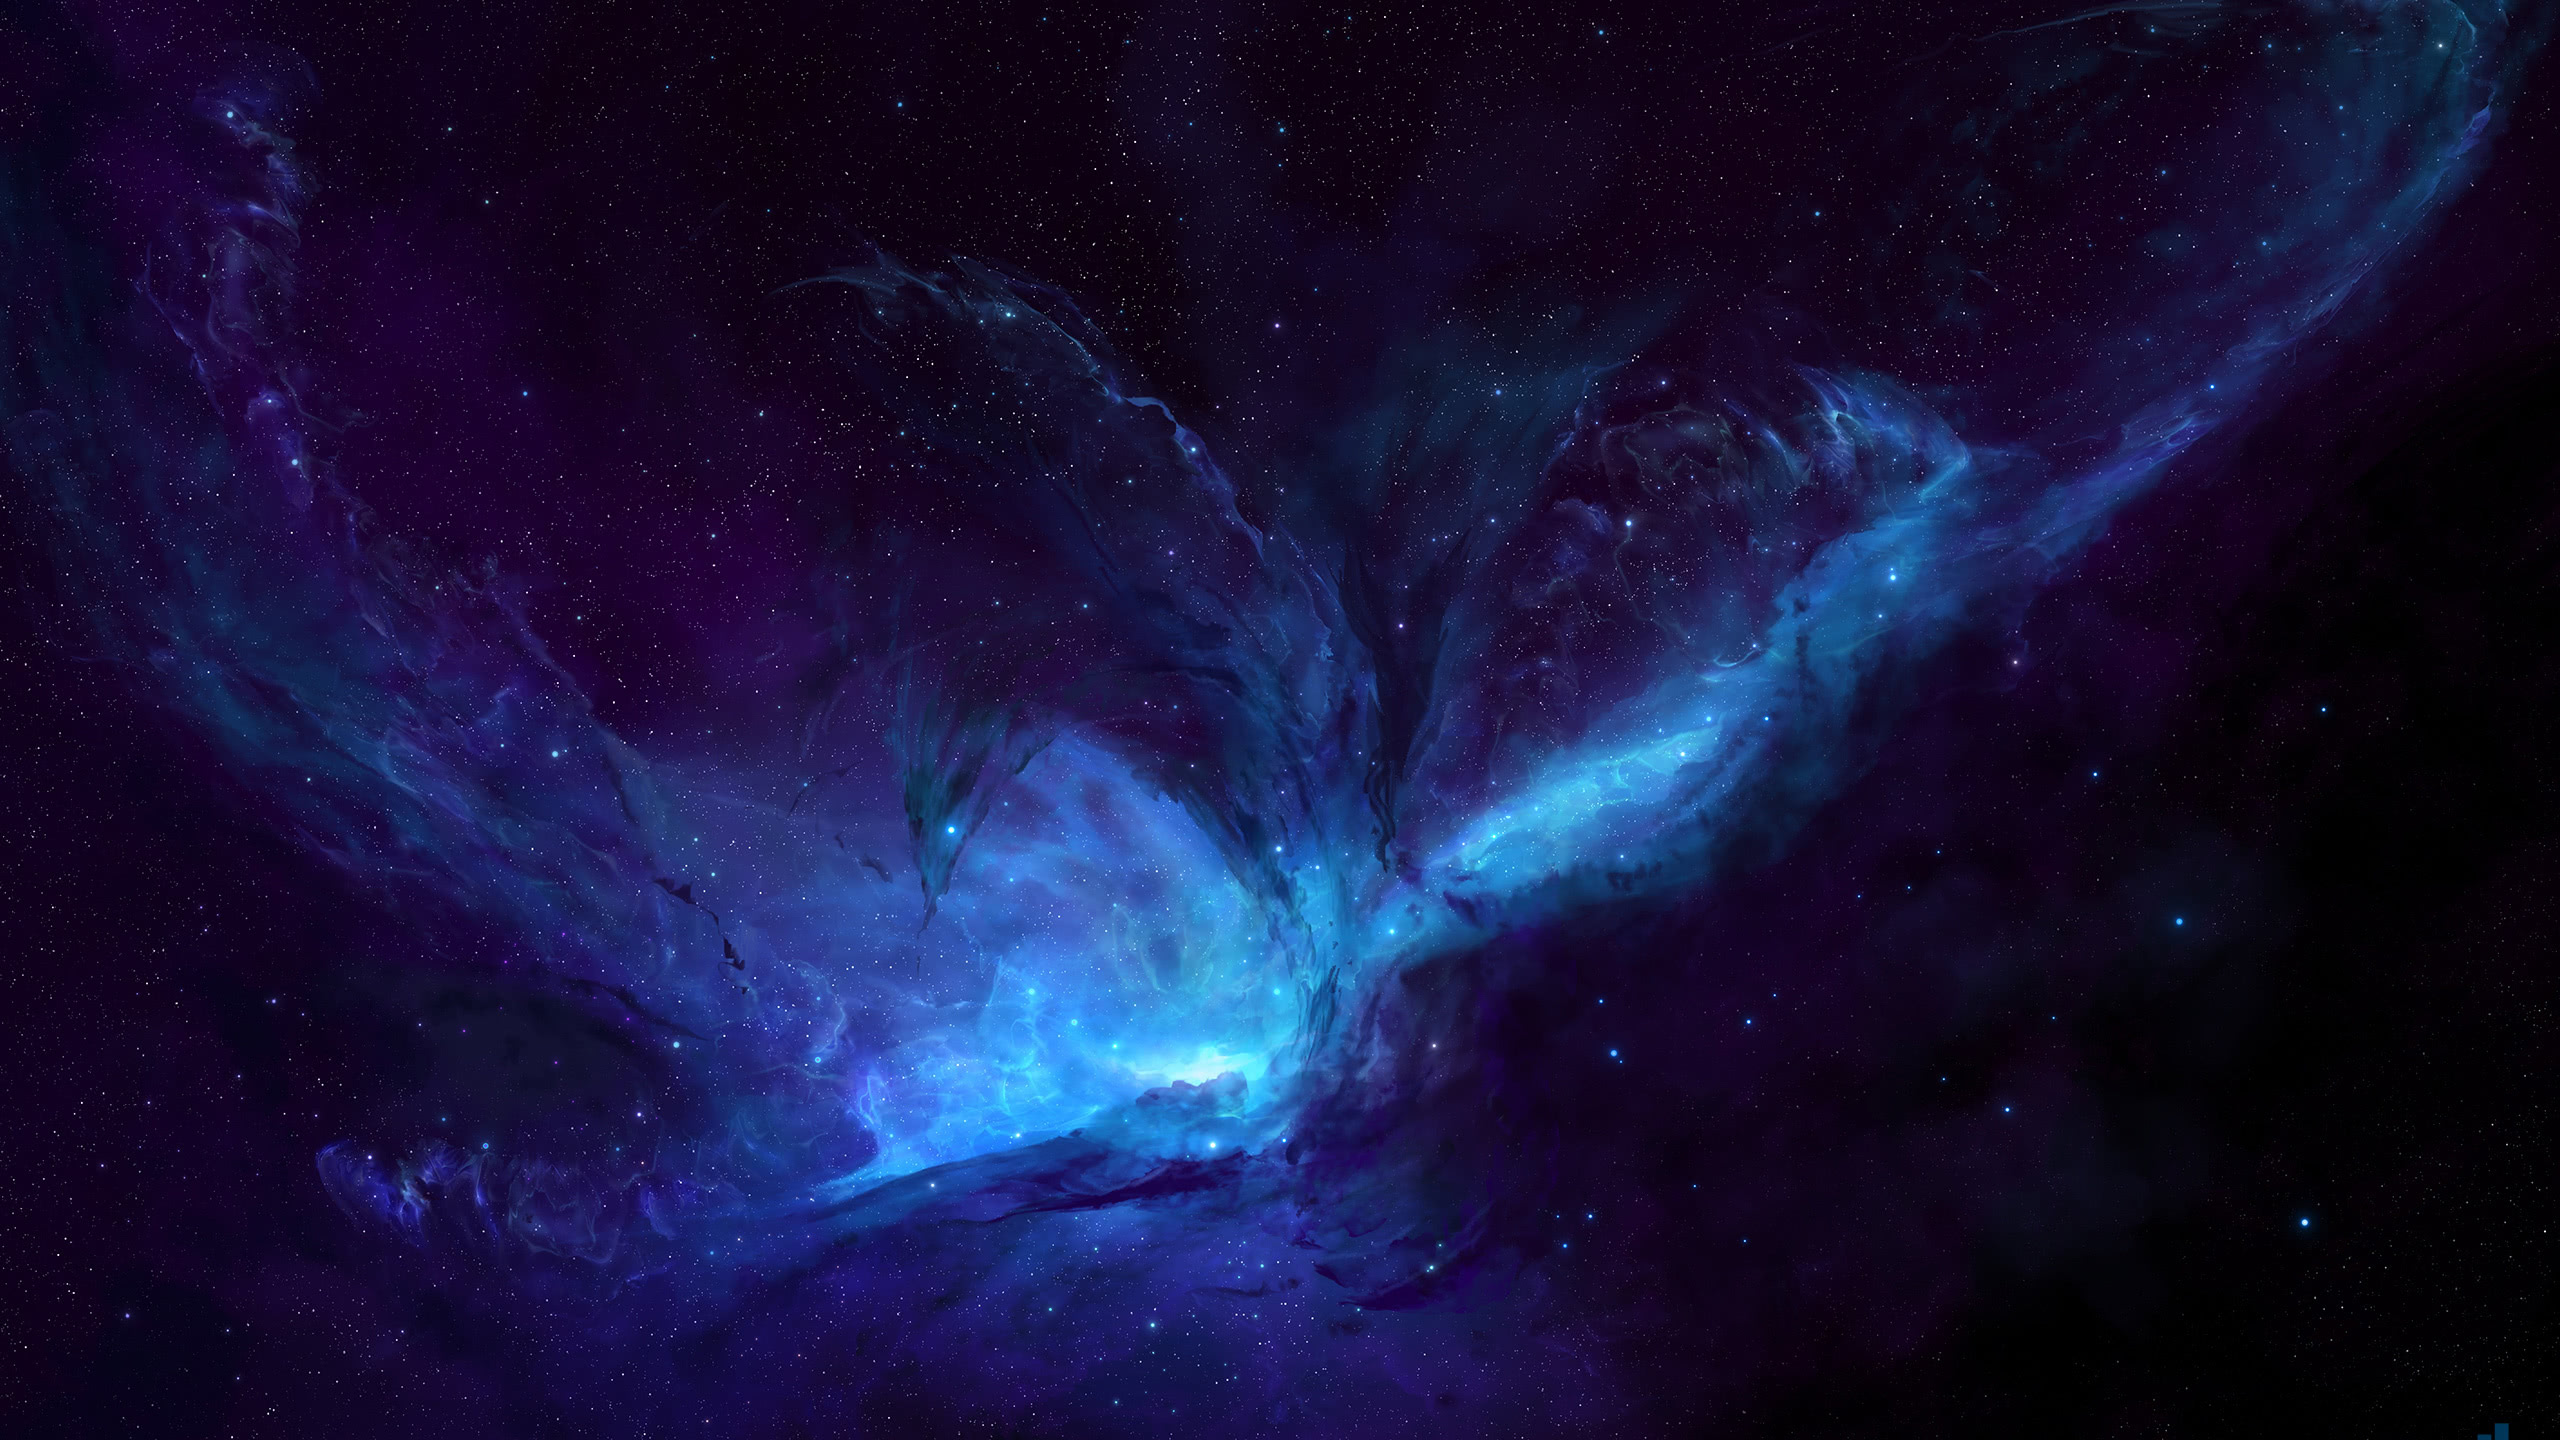 nebula blue wqhd 1440p wallpaper